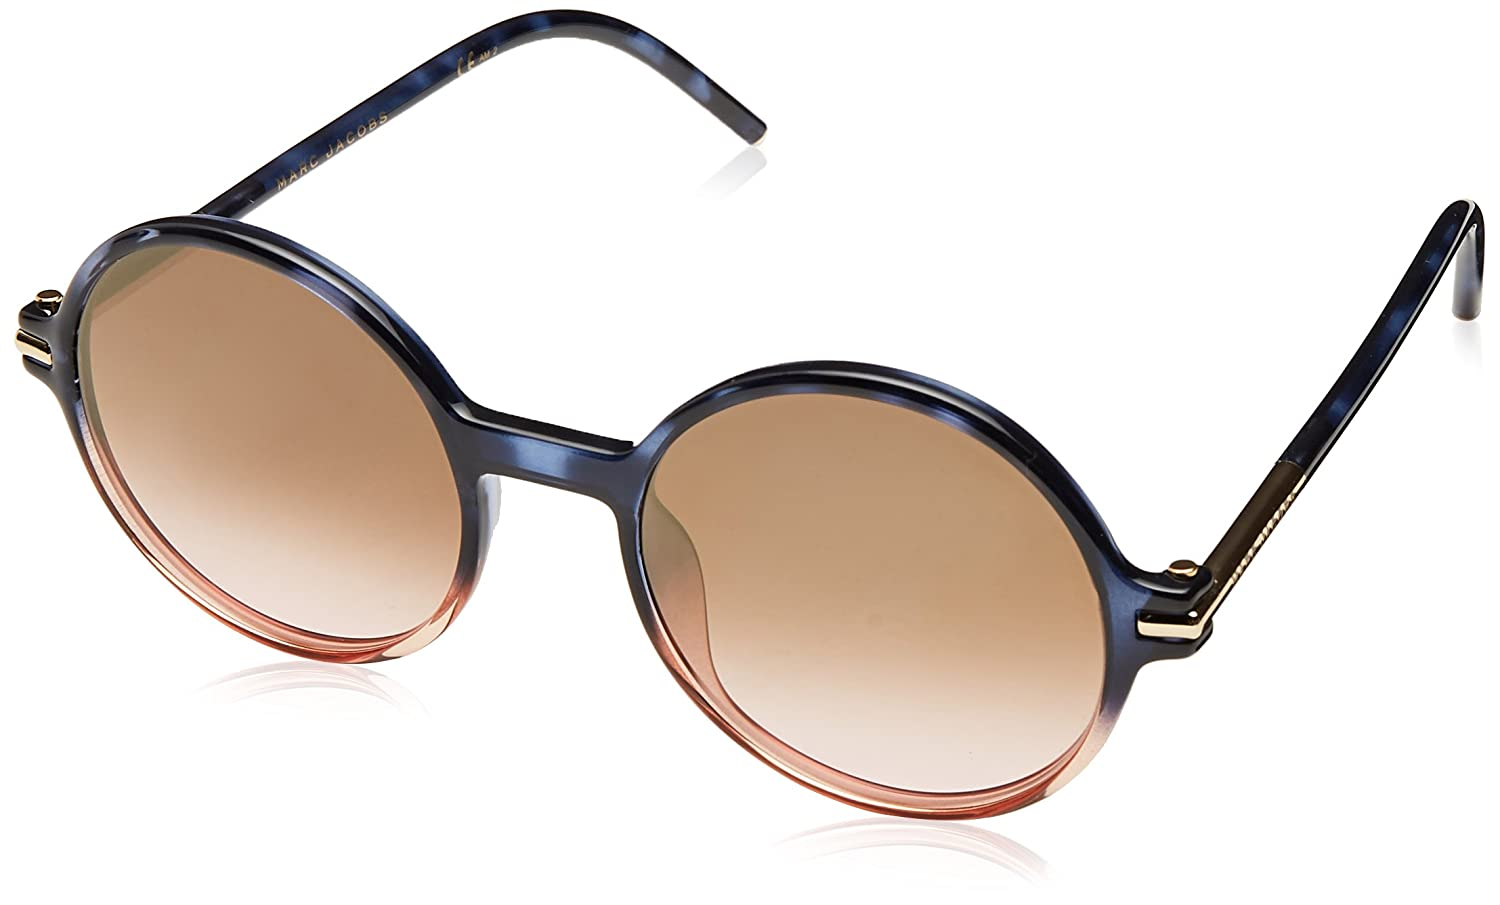 595d288e6066 Marc Jacobs Women's Perfectly Round Sunglasses: Amazon.ca: Clothing &  Accessories